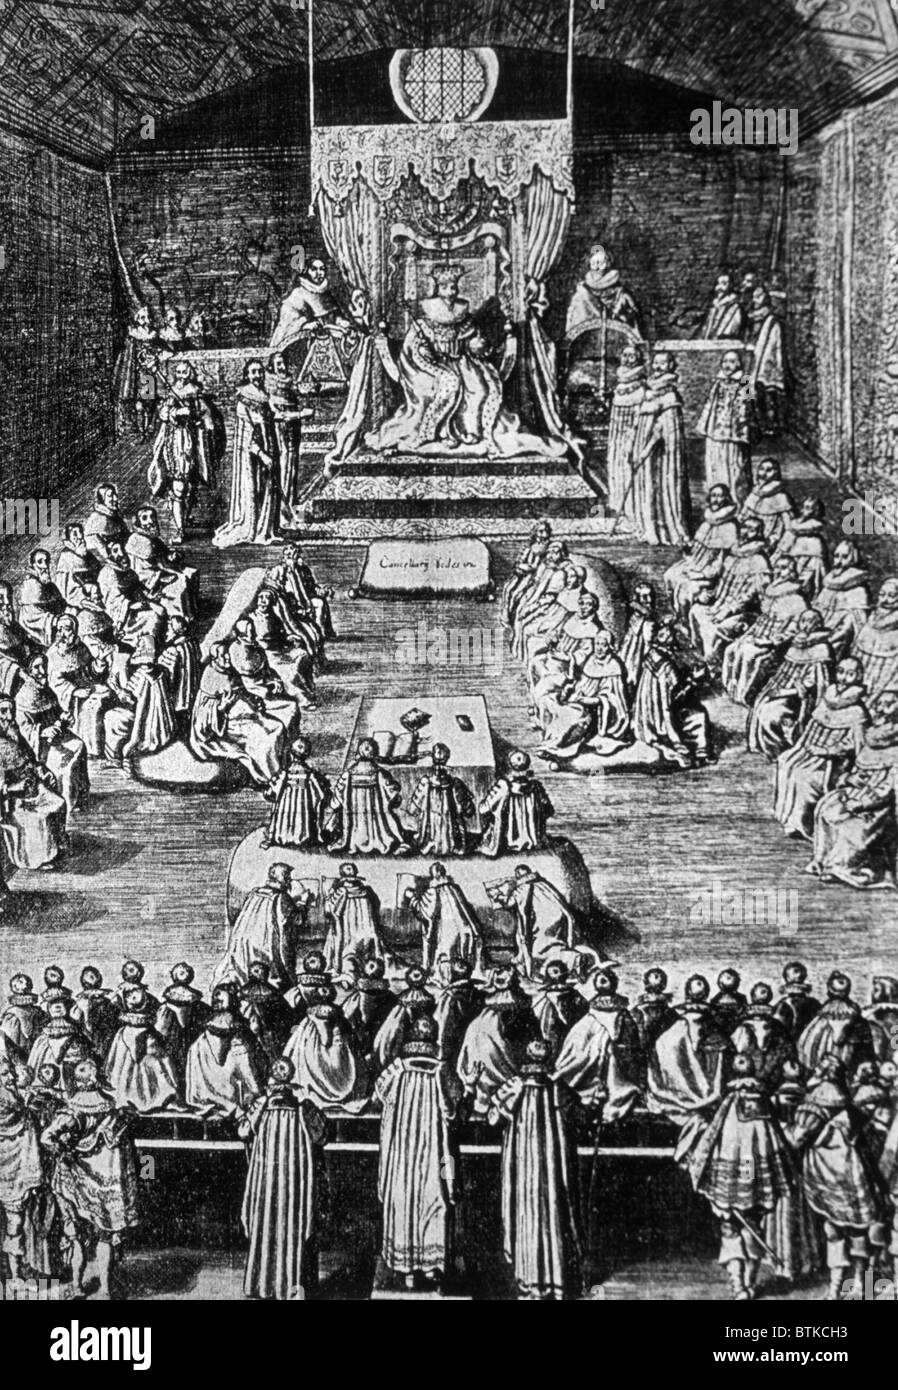 King Charles I (1600-1649), King of England, Scotland, and Ireland from  1625 until his execution in 1649. Charles I opening Parliament, ...